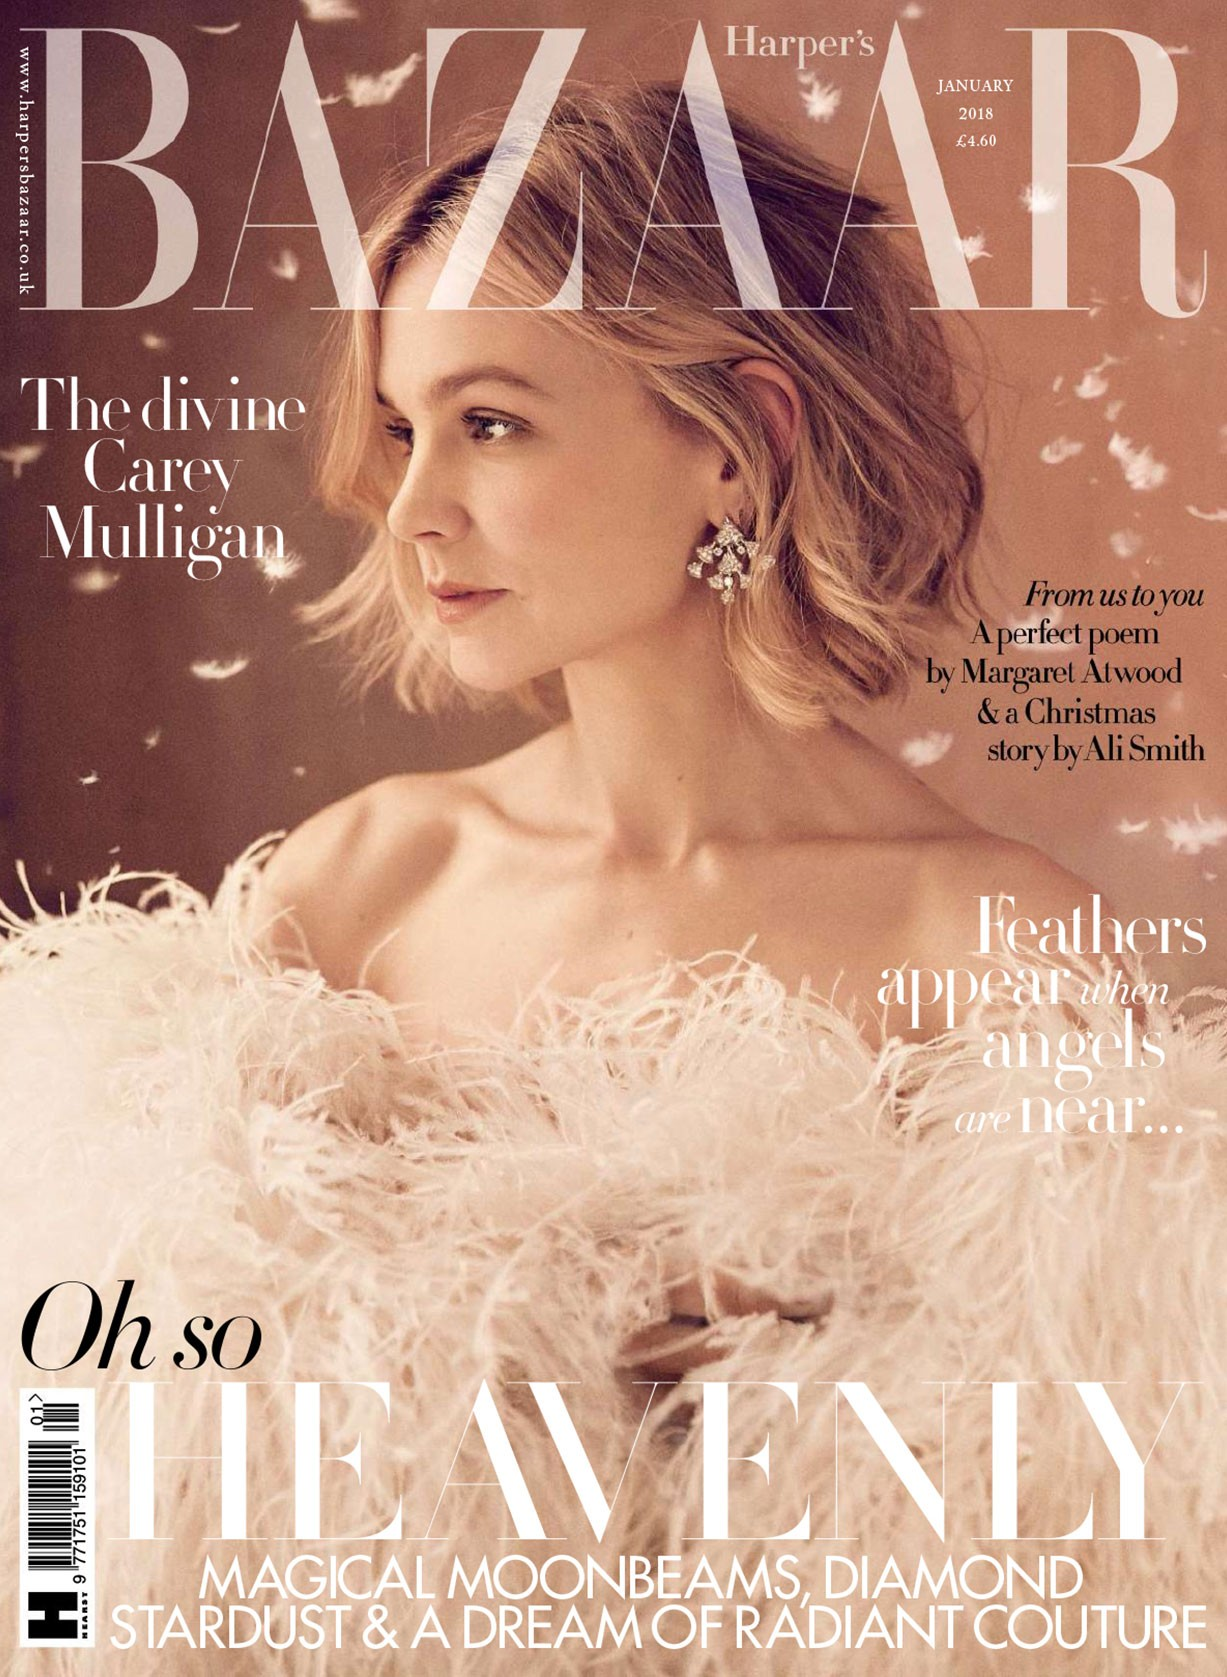 Carey Mulligan by Richard Phibbs - UK Harper's Bazaar january 2018